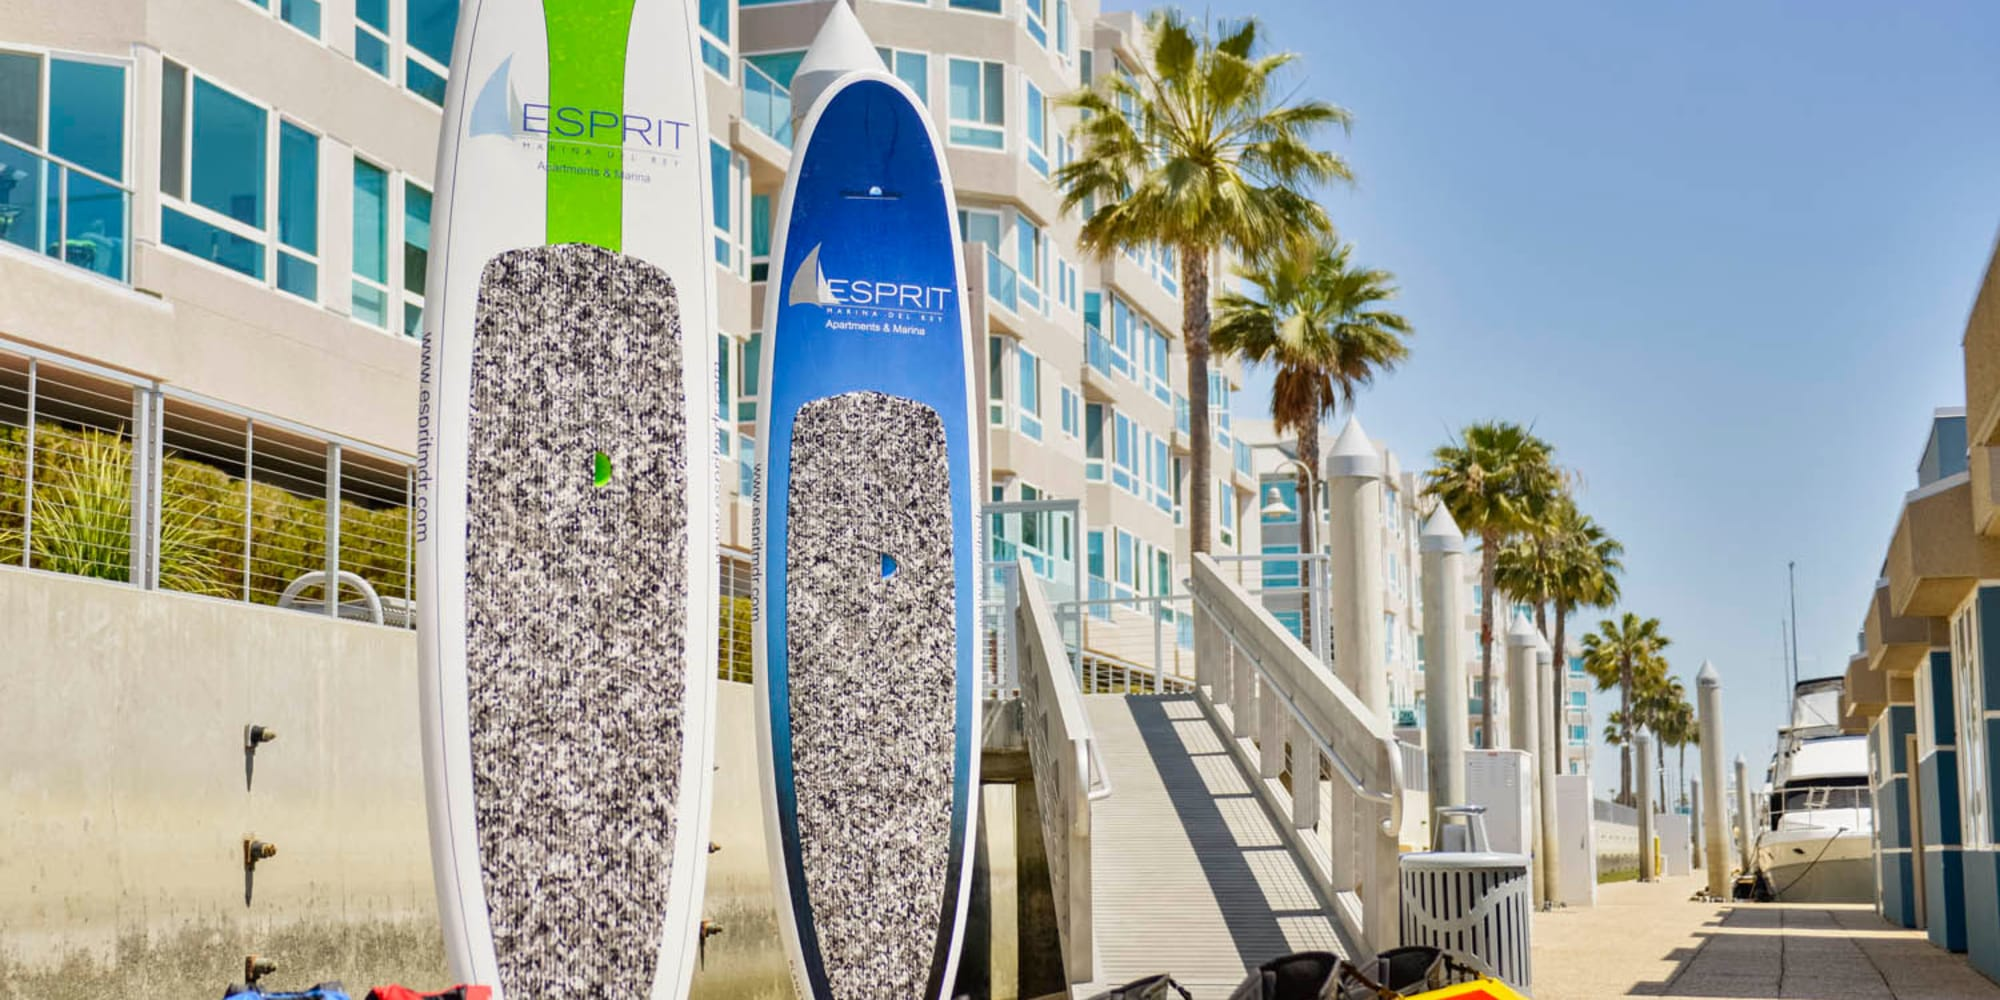 Surfboards available for use at Esprit Marina del Rey in Marina Del Rey, California